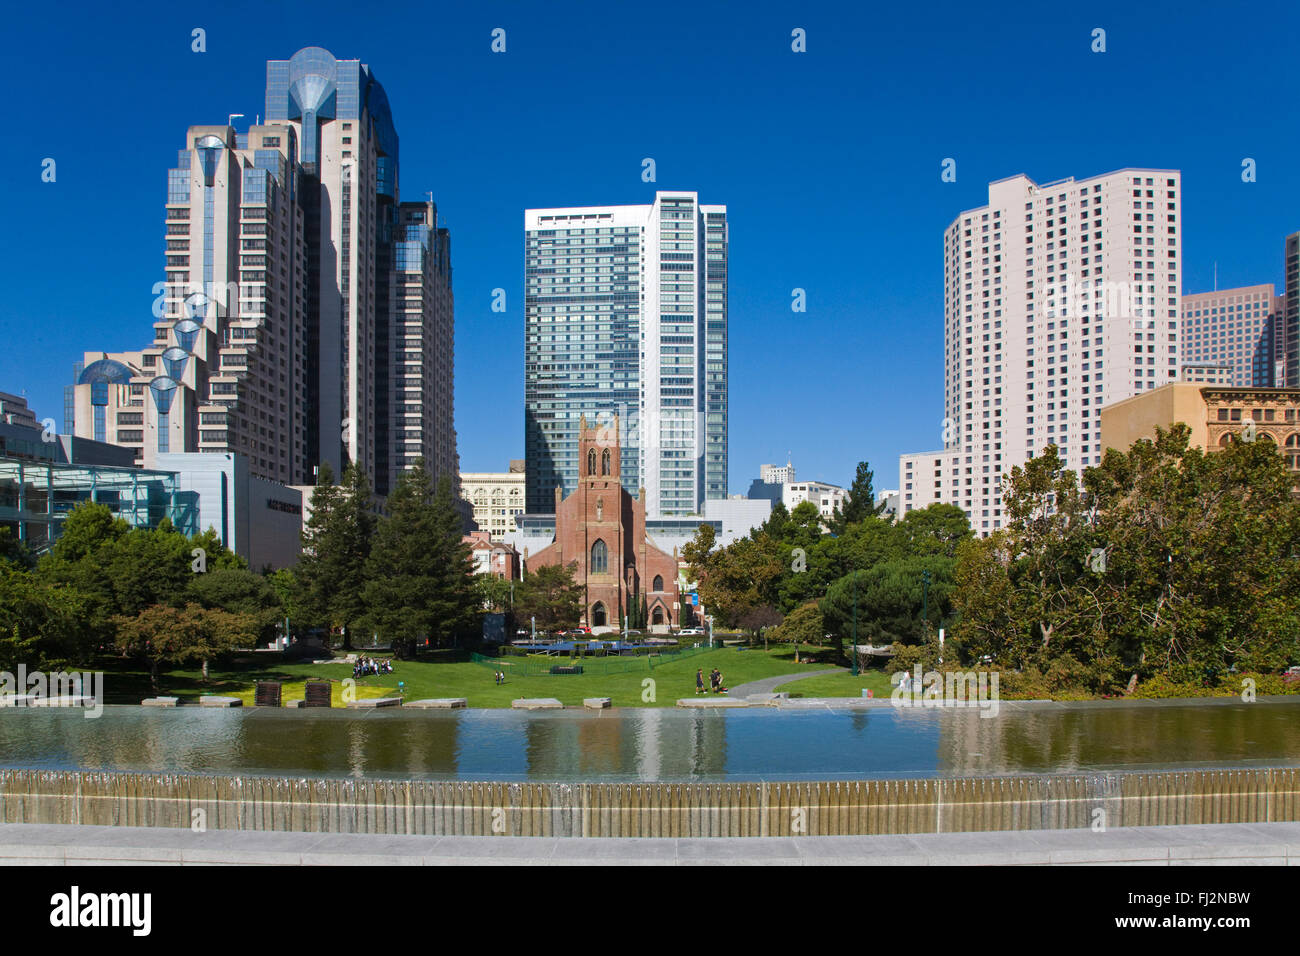 MARTIN LUTHER KING MEMORIAL WATER FOUNTAIN, the MARIOTT and FOUR SEASONS hotels as seen from the YERBA BUENA GARDENS - Stock Image